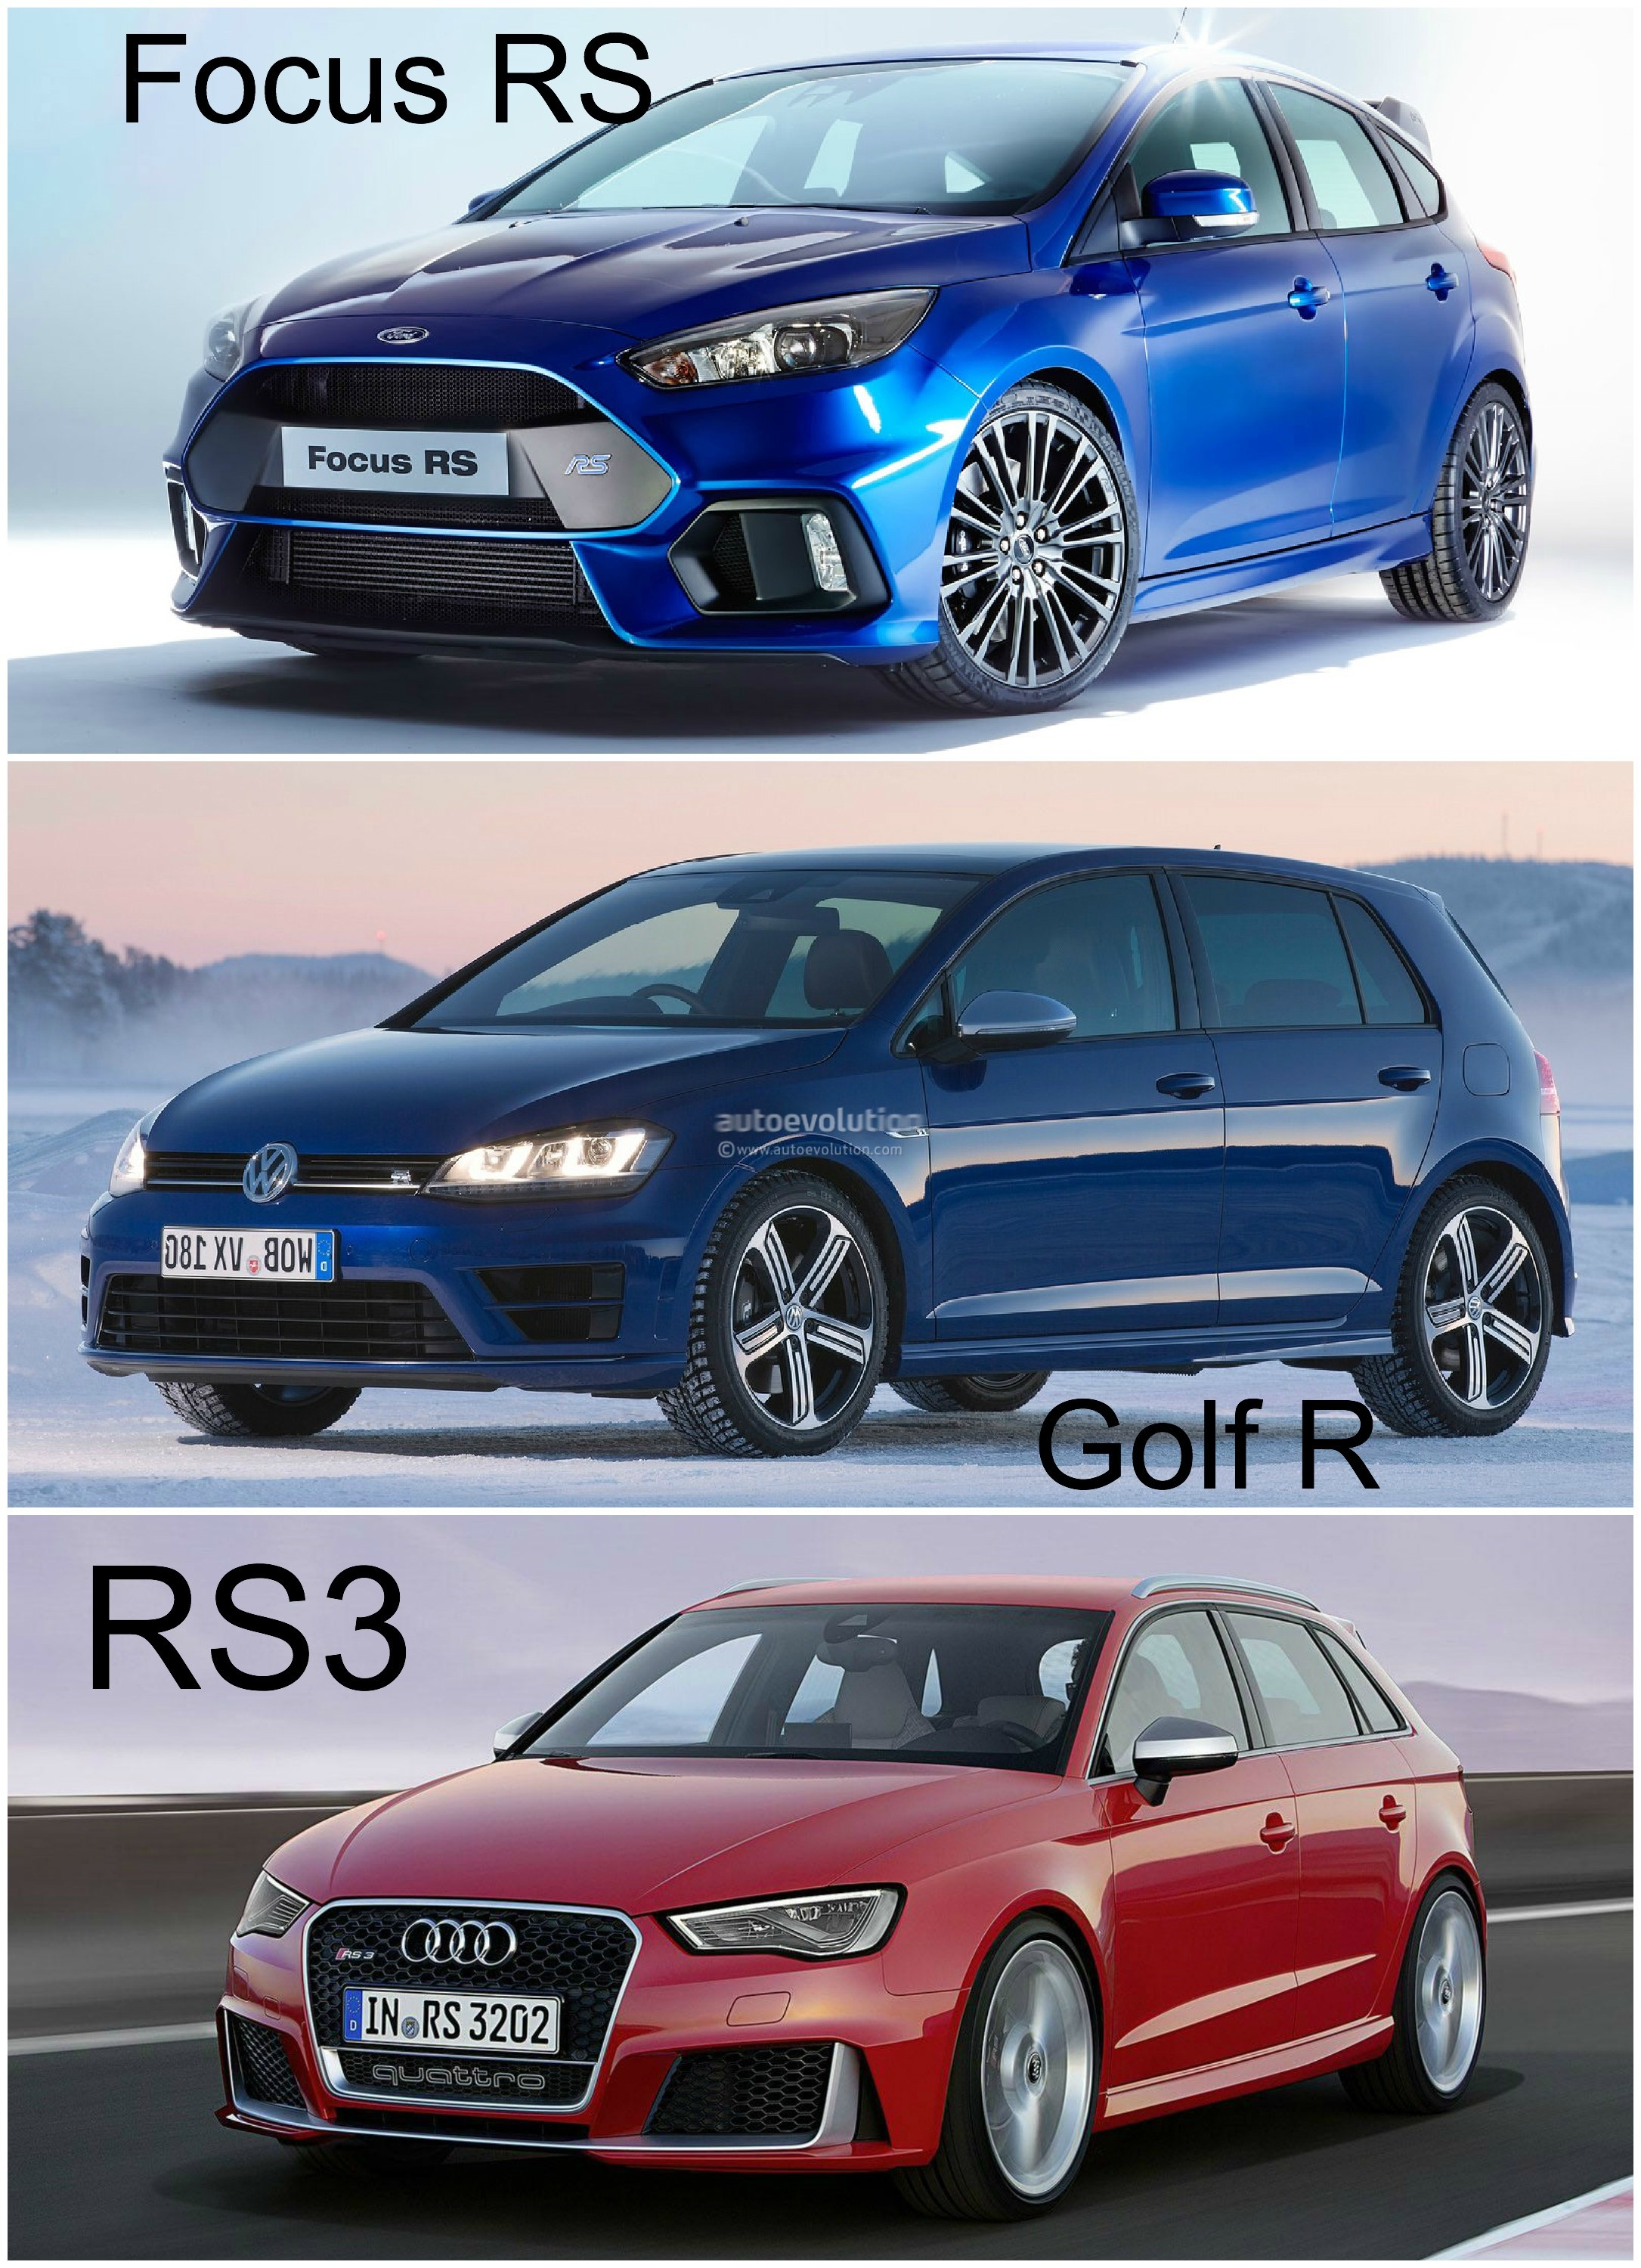 2016 ford focus rs vs golf r and audi rs3 hyper hatch photo comparison autoevolution. Black Bedroom Furniture Sets. Home Design Ideas